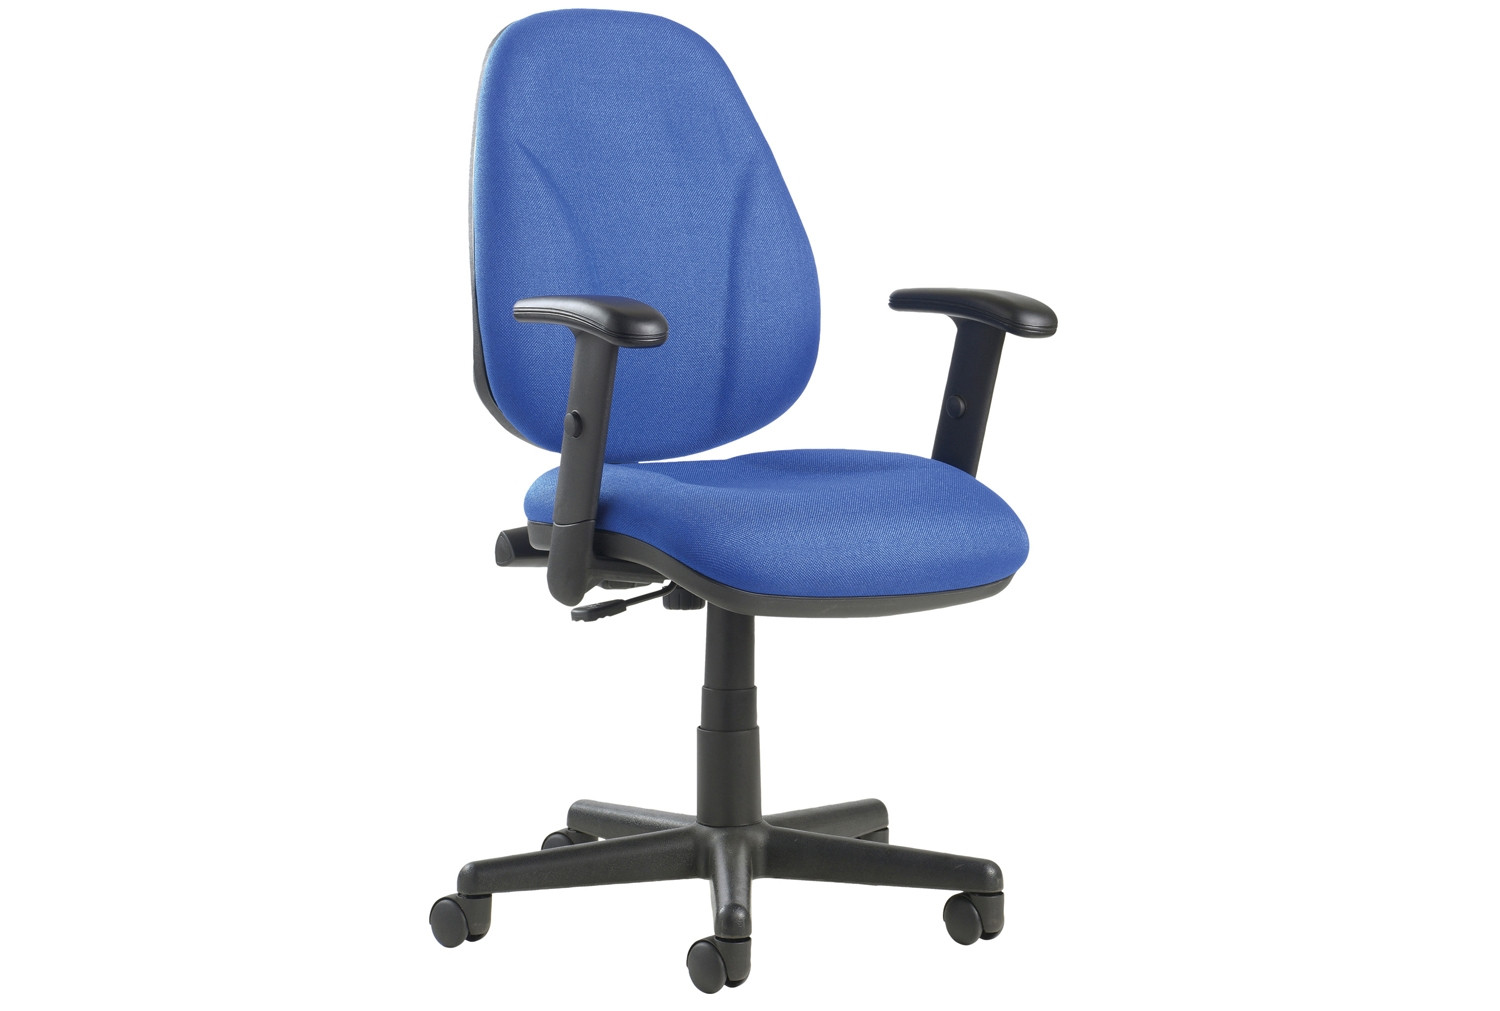 Next-Day Full Lumbar 1 Lever Operator Chair With Adjustable Arms